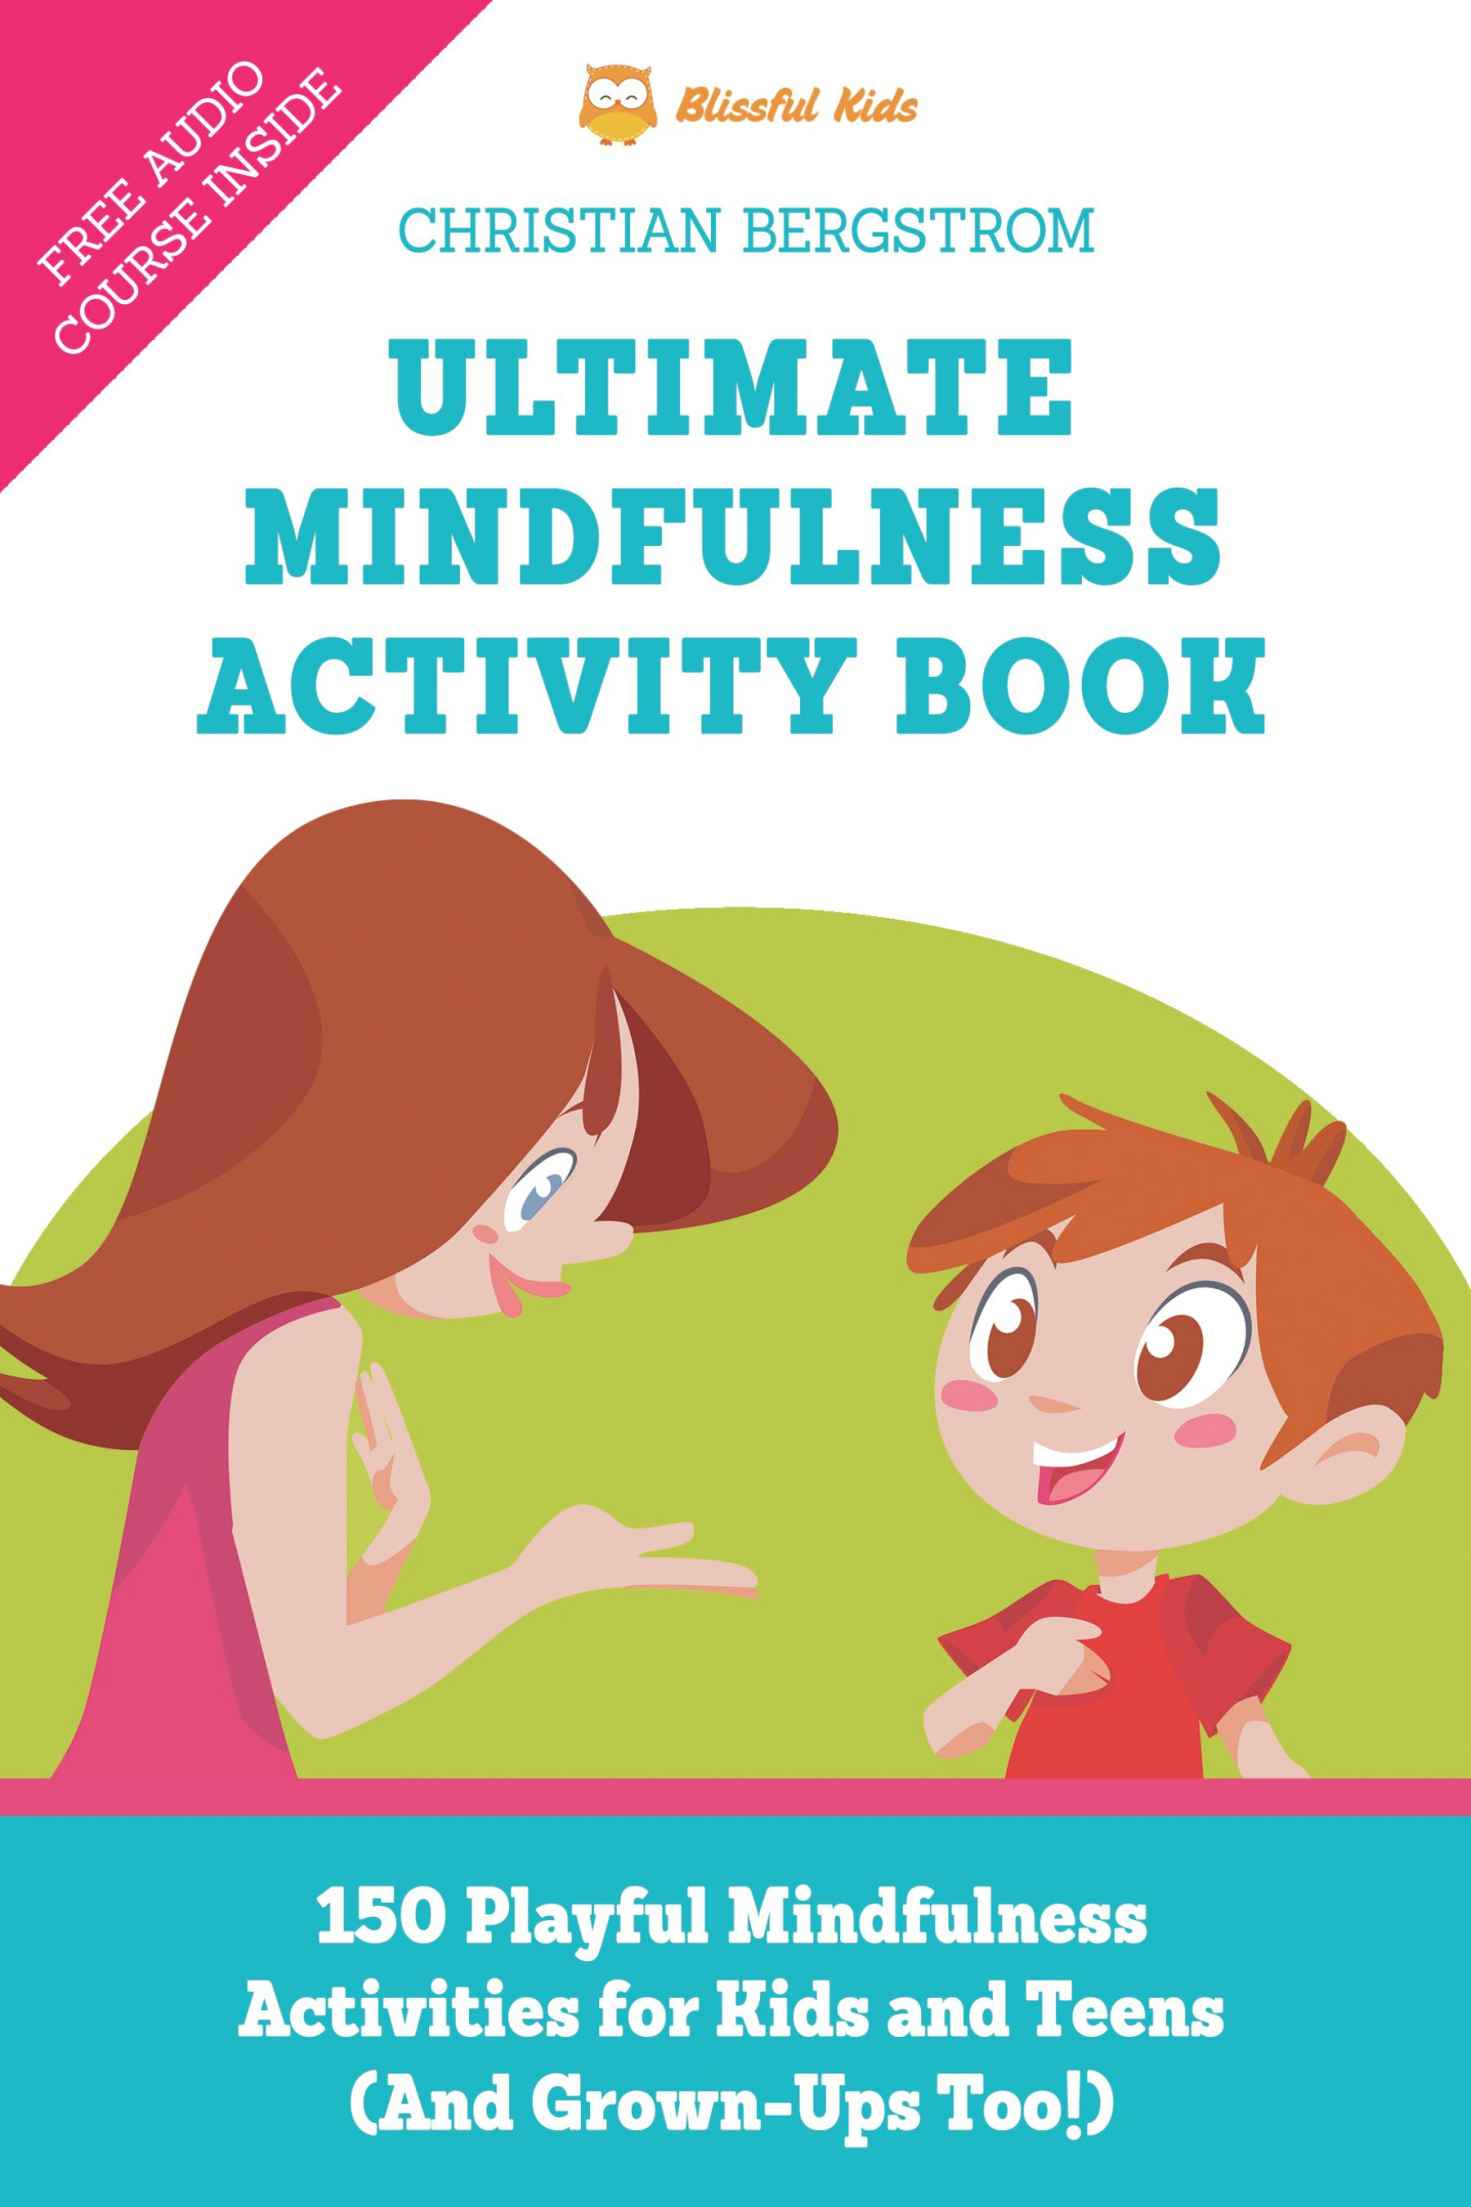 Download Ultimate Mindfulness Activity Book 150 Playful